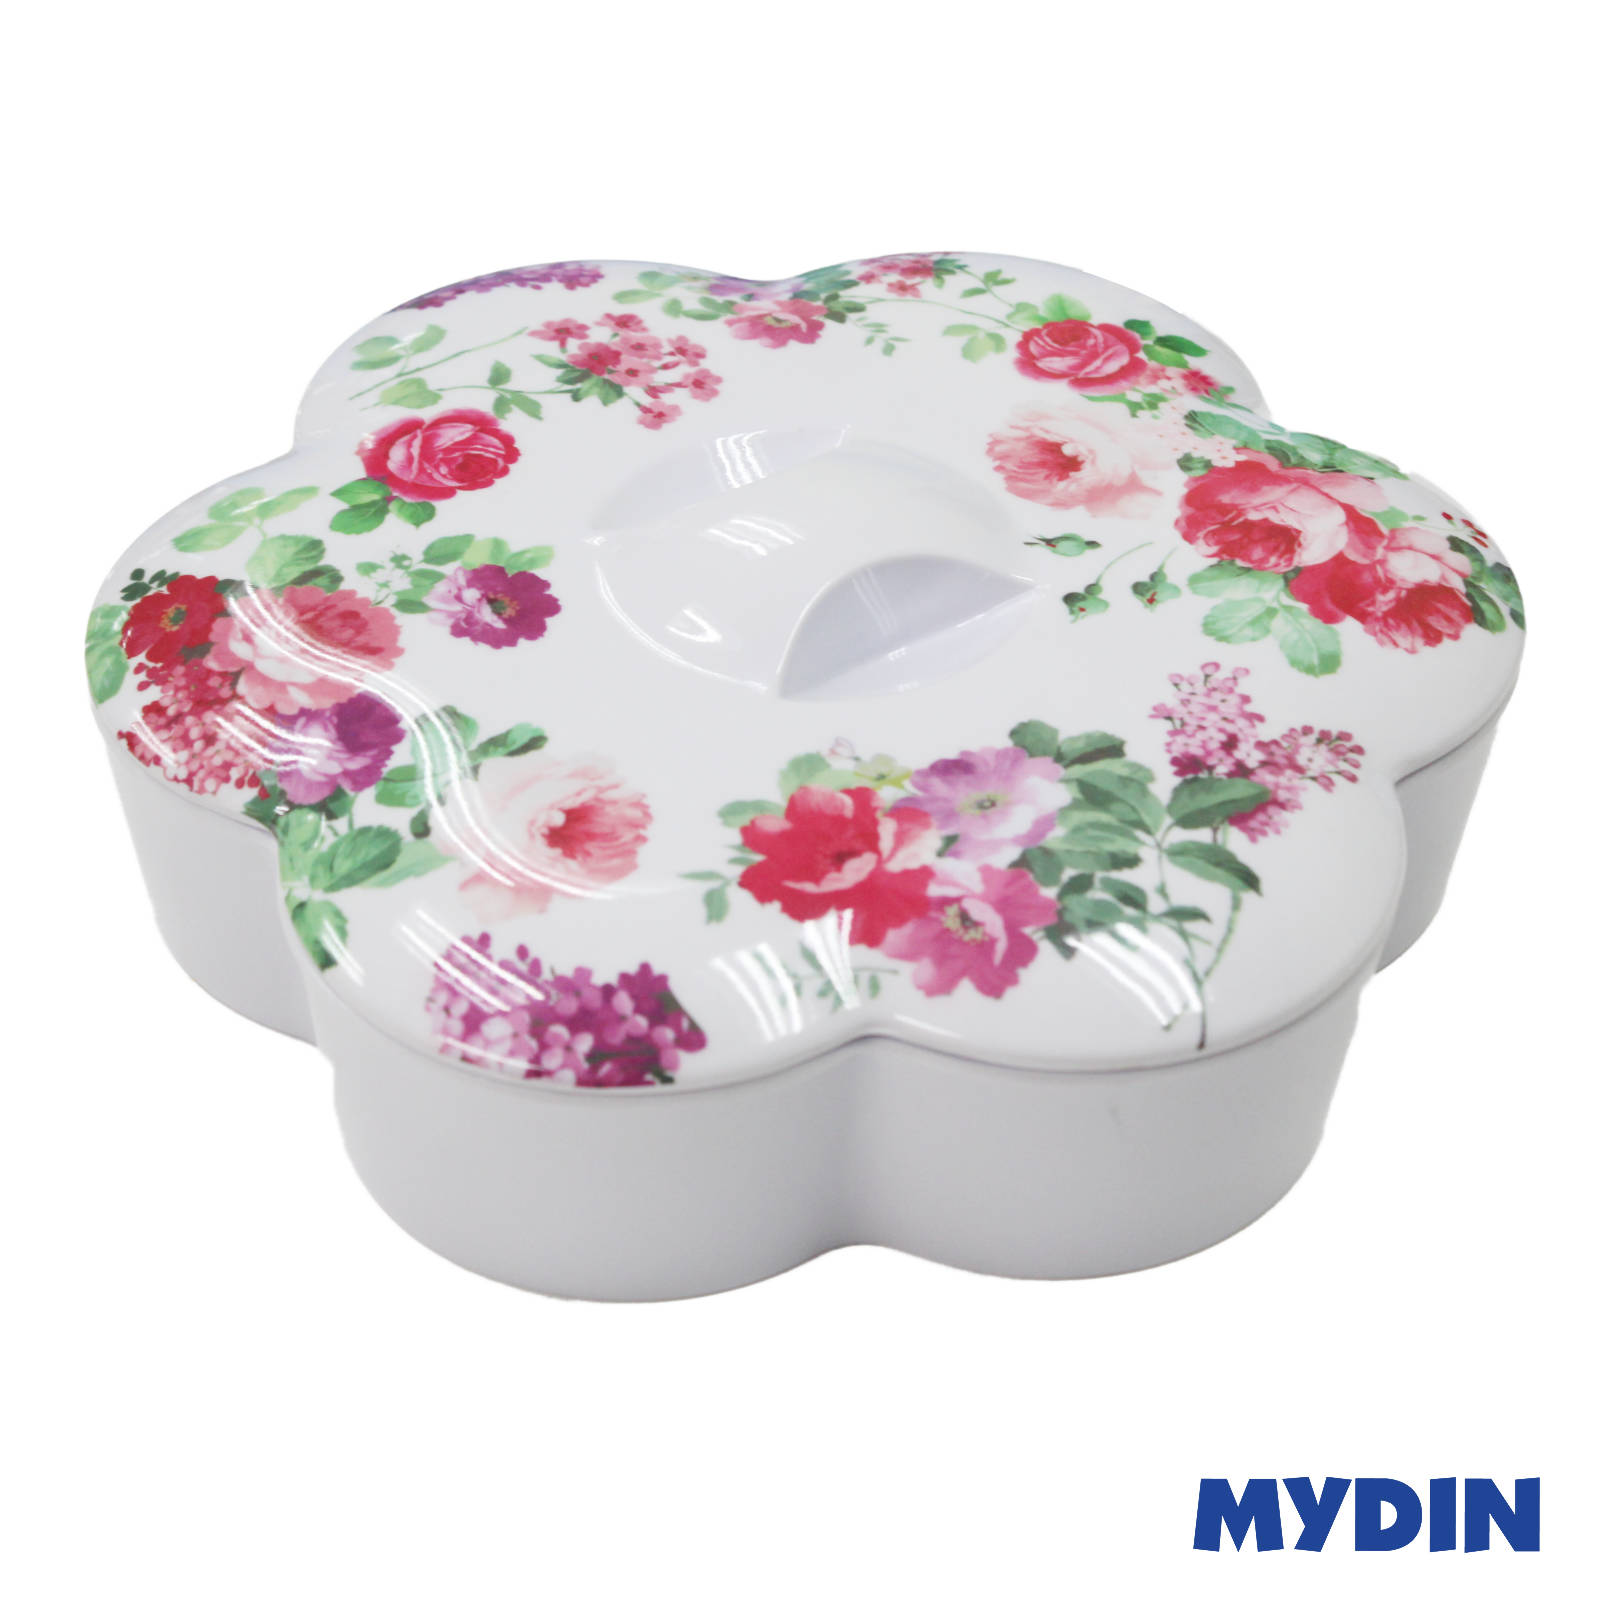 My Home Melamine Candy Bowl (12'') FWR CW-CD-12